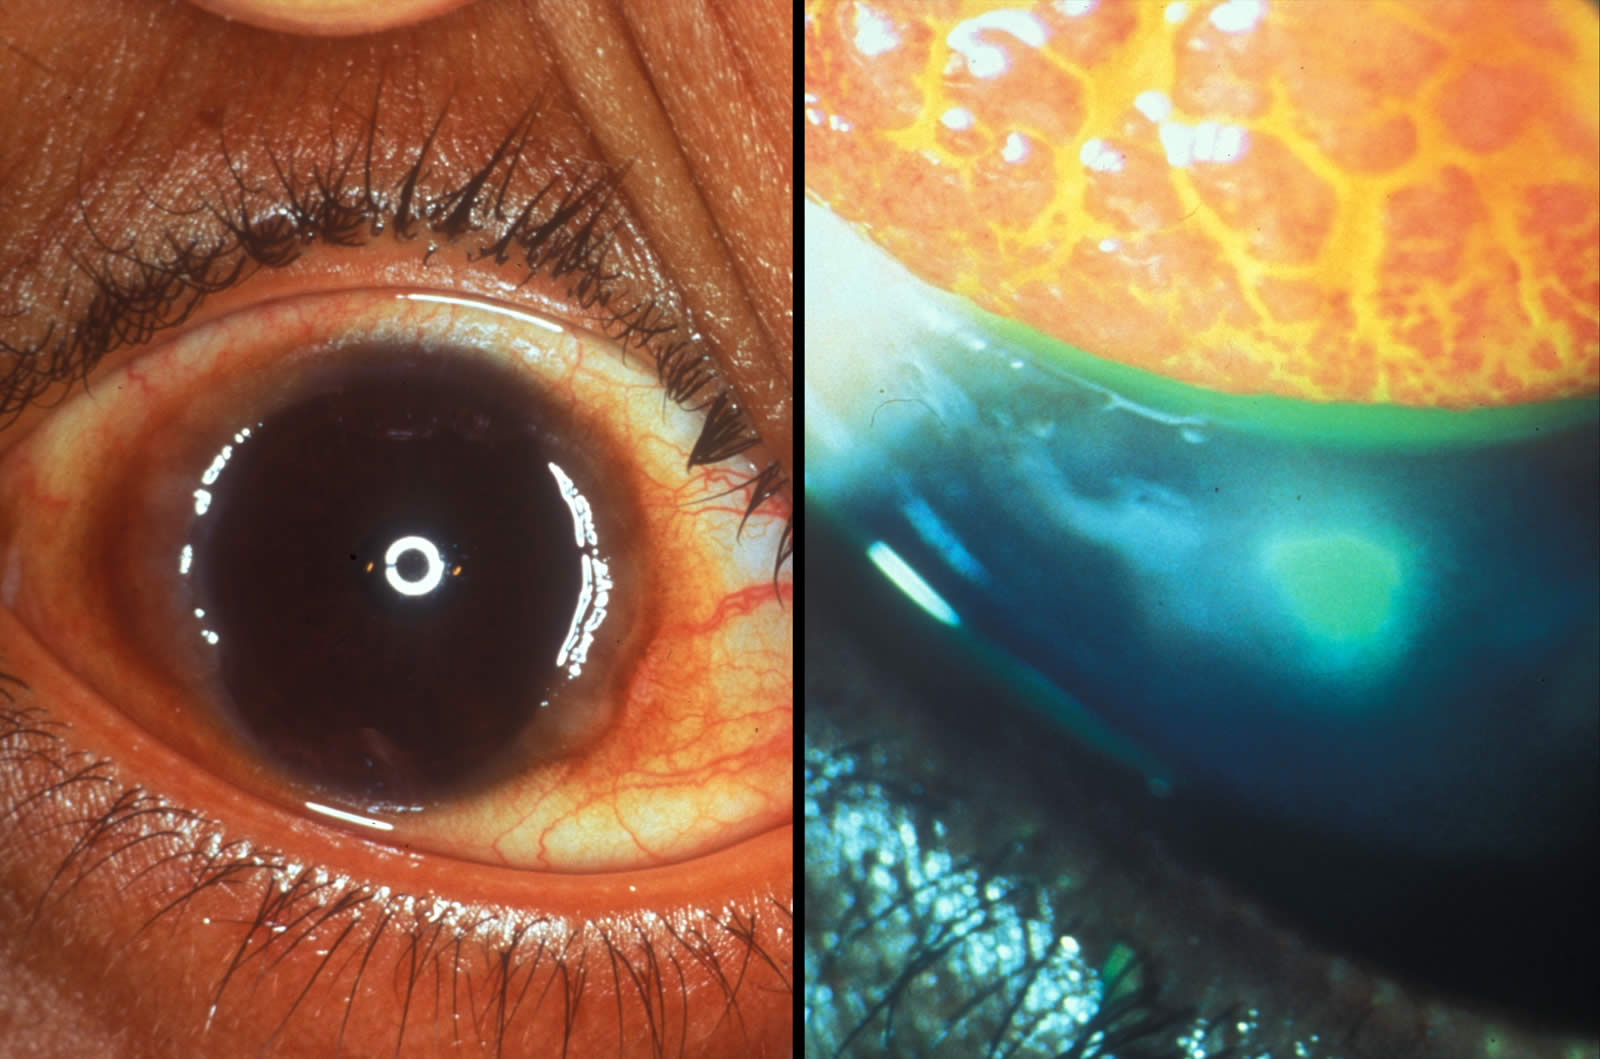 atopic keratoconjunctivitis images of christmas